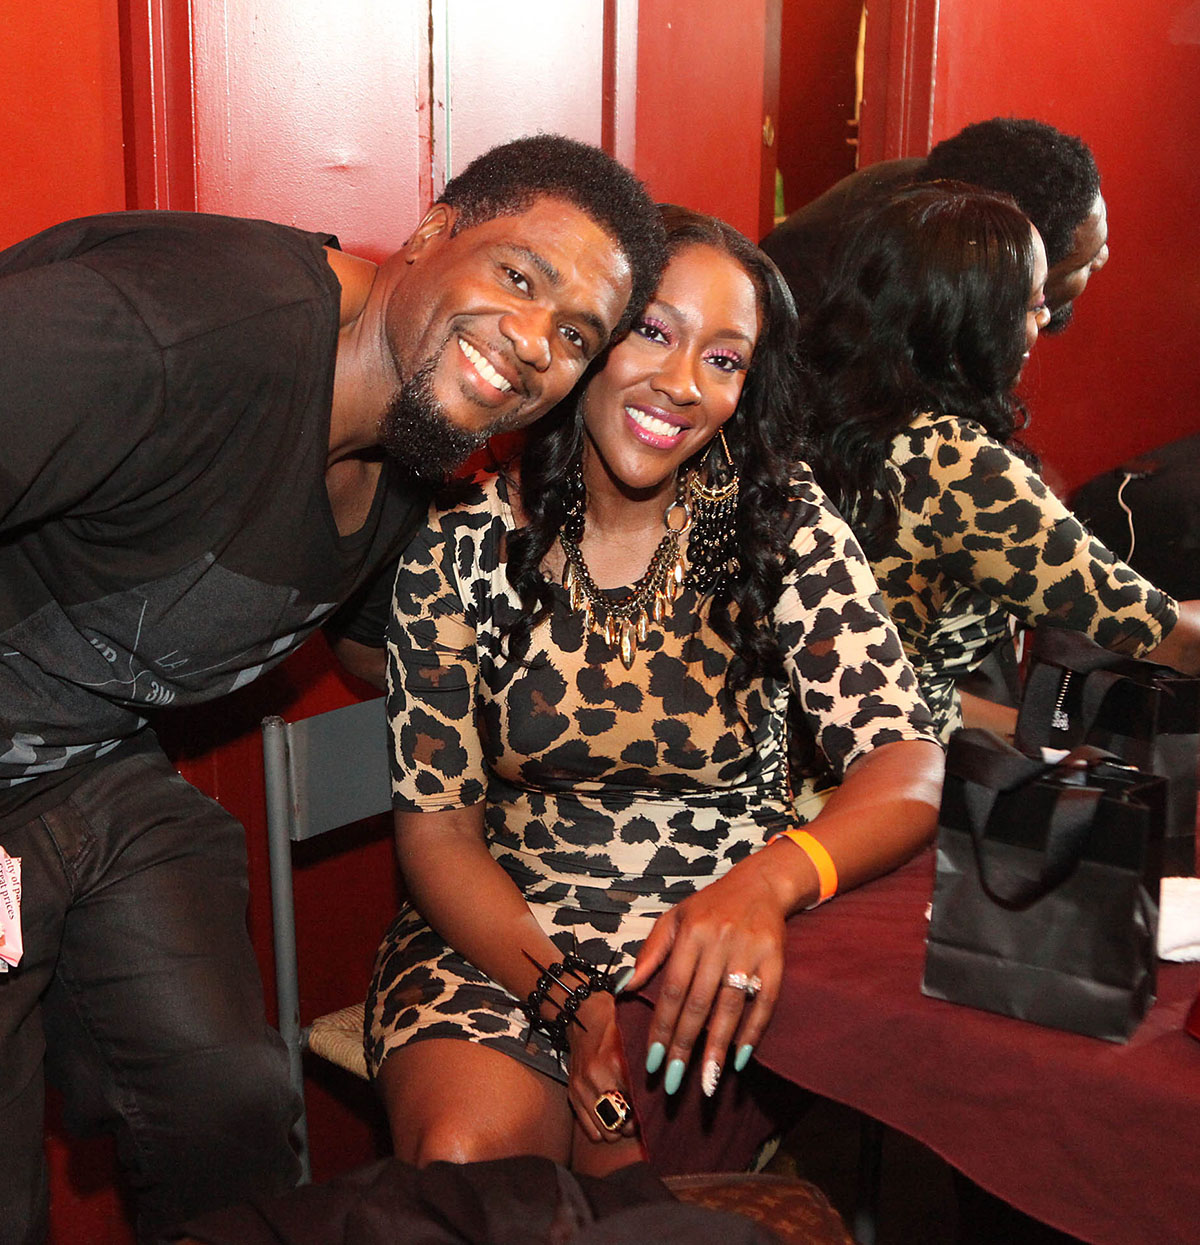 Big Mike Clemmons and Cheryl Coko Clemons split